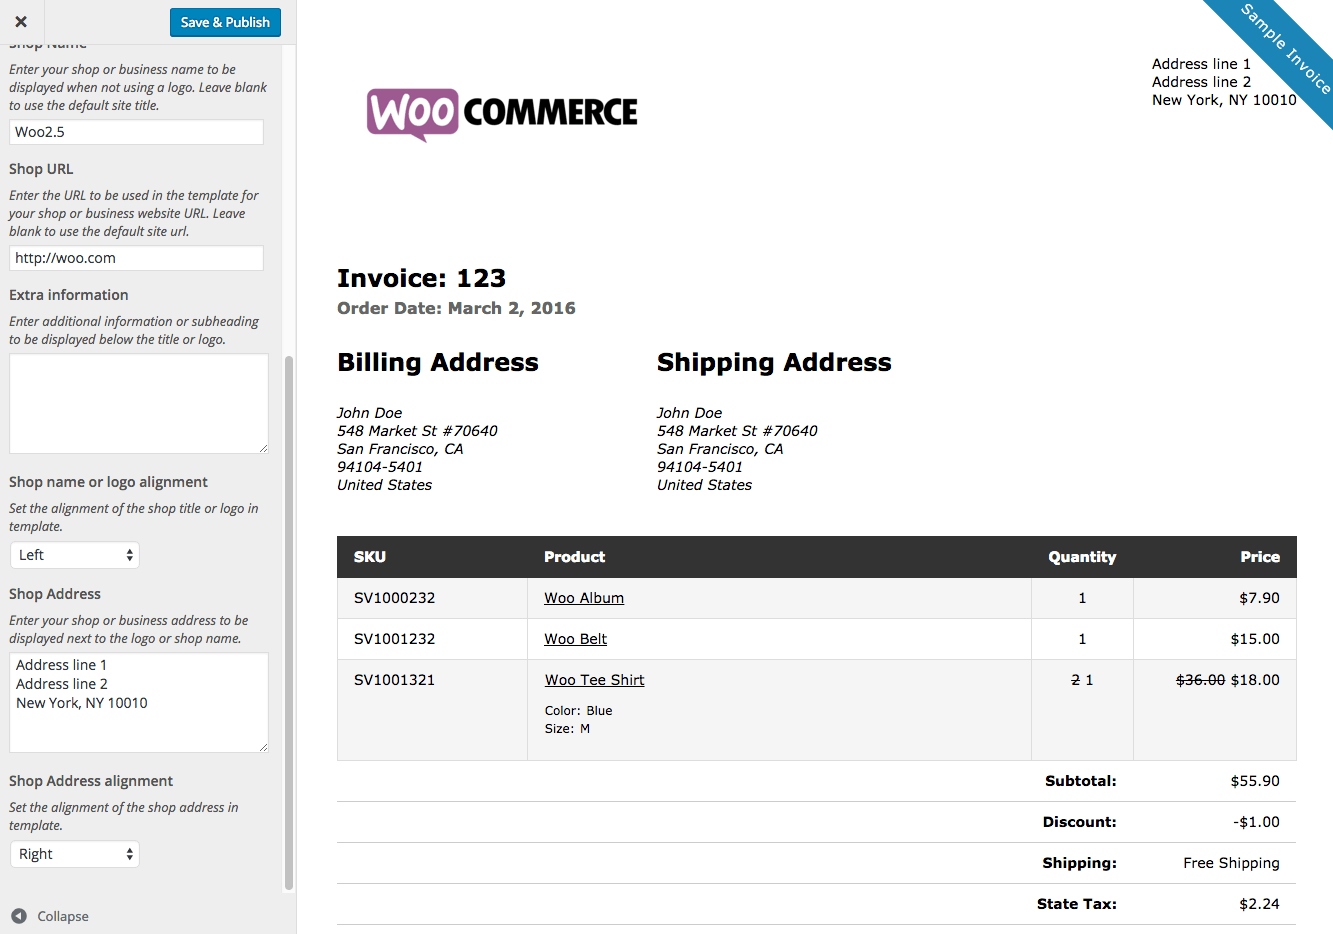 Aaaaeroincus  Pleasant Woocommerce Print Invoices Amp Packing Lists  Woocommerce Docs With Likable Woocommerce Print Invoices  Packing Lists Customizer With Alluring Invoice Audit Also Freelance Invoice Templates In Addition Basware Invoice Processing And Print Free Invoice As Well As Work Invoice Template Free Additionally Best Invoicing Software For Freelancers From Docswoocommercecom With Aaaaeroincus  Likable Woocommerce Print Invoices Amp Packing Lists  Woocommerce Docs With Alluring Woocommerce Print Invoices  Packing Lists Customizer And Pleasant Invoice Audit Also Freelance Invoice Templates In Addition Basware Invoice Processing From Docswoocommercecom